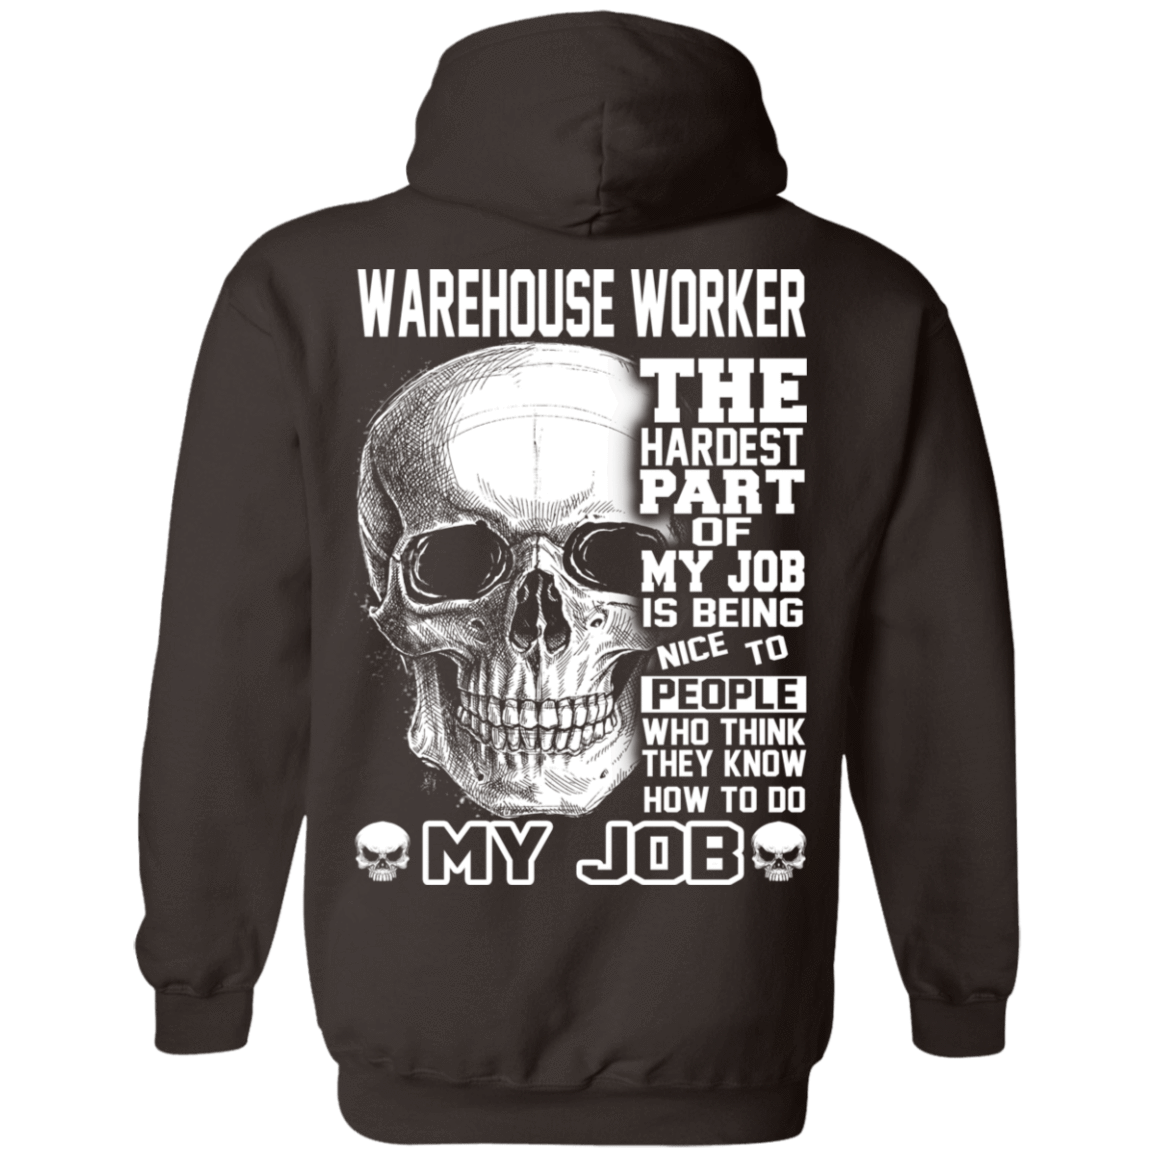 Warehouse Worker The Hardest Part Of My Job 541-4752-71609201-23095 - Tee Ript